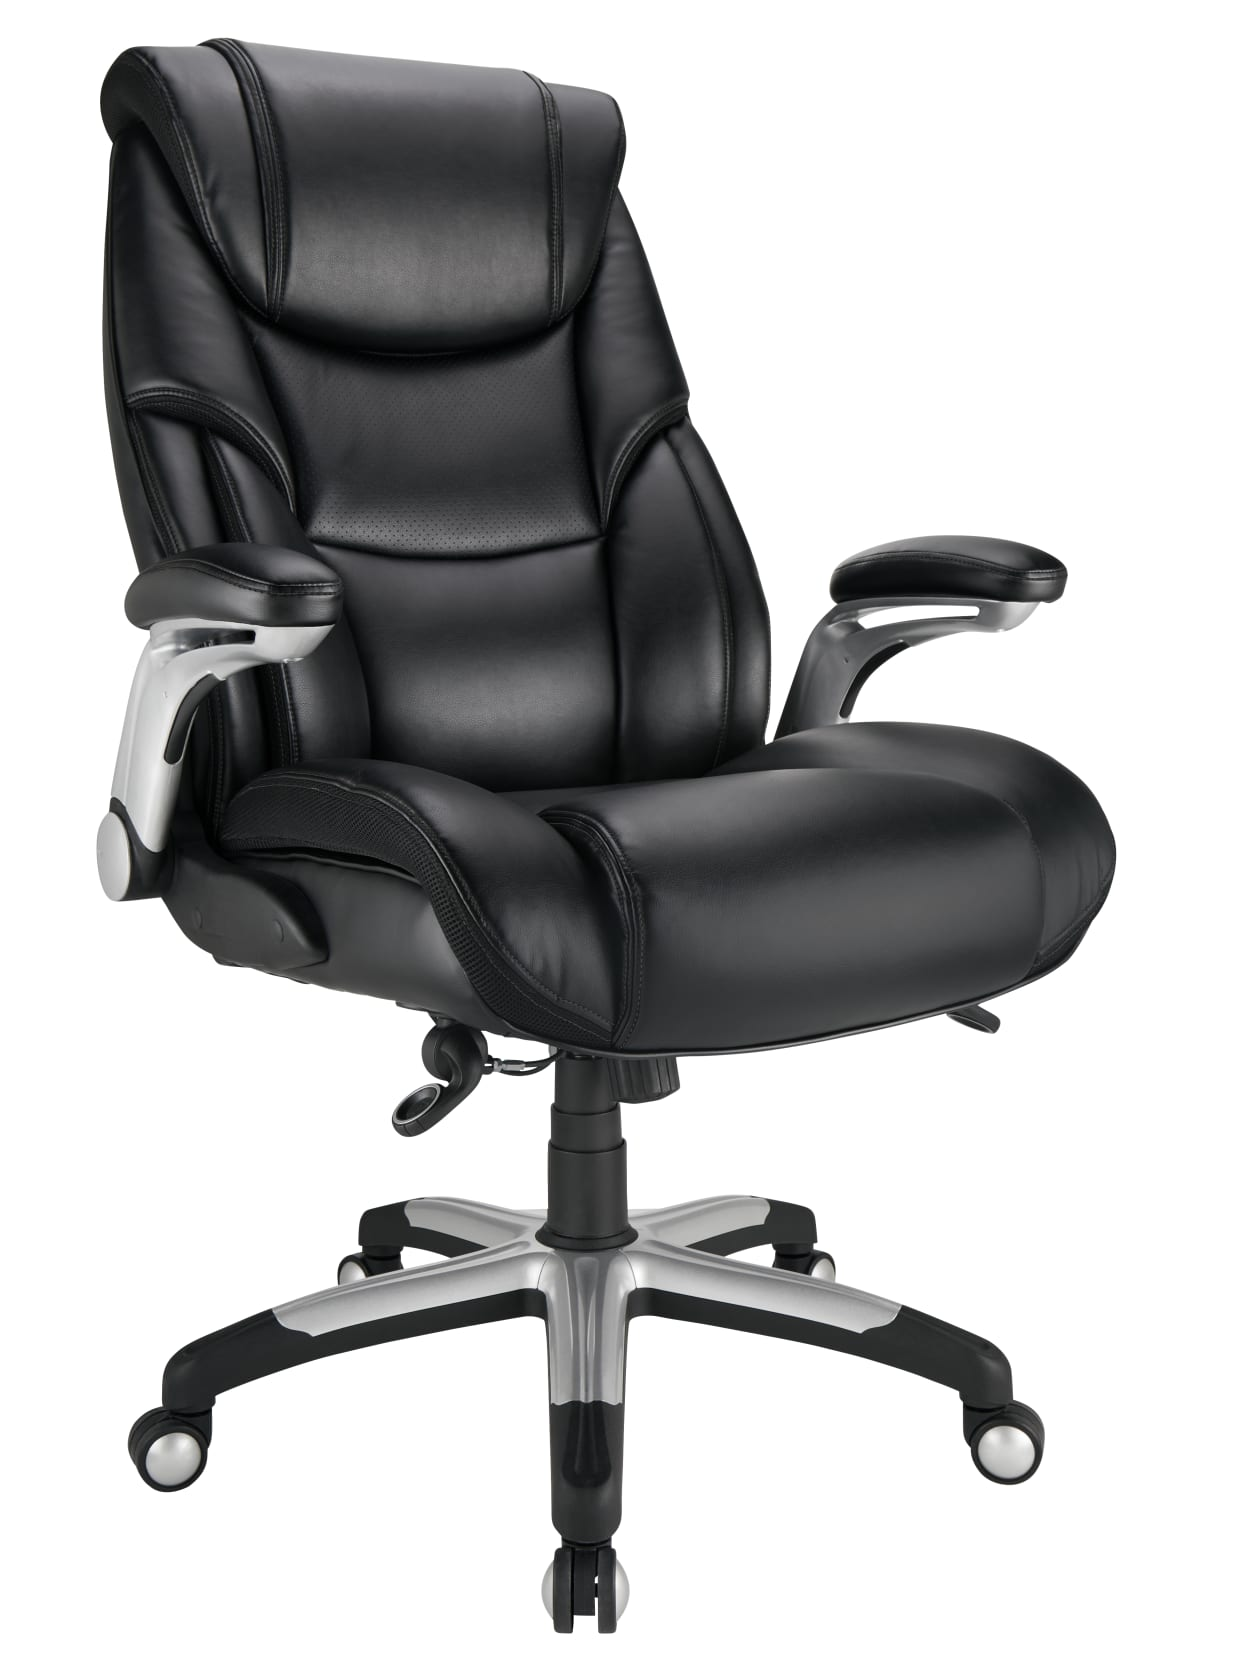 Realspace Torval Bigtall Sporty Chair Black Office Depot